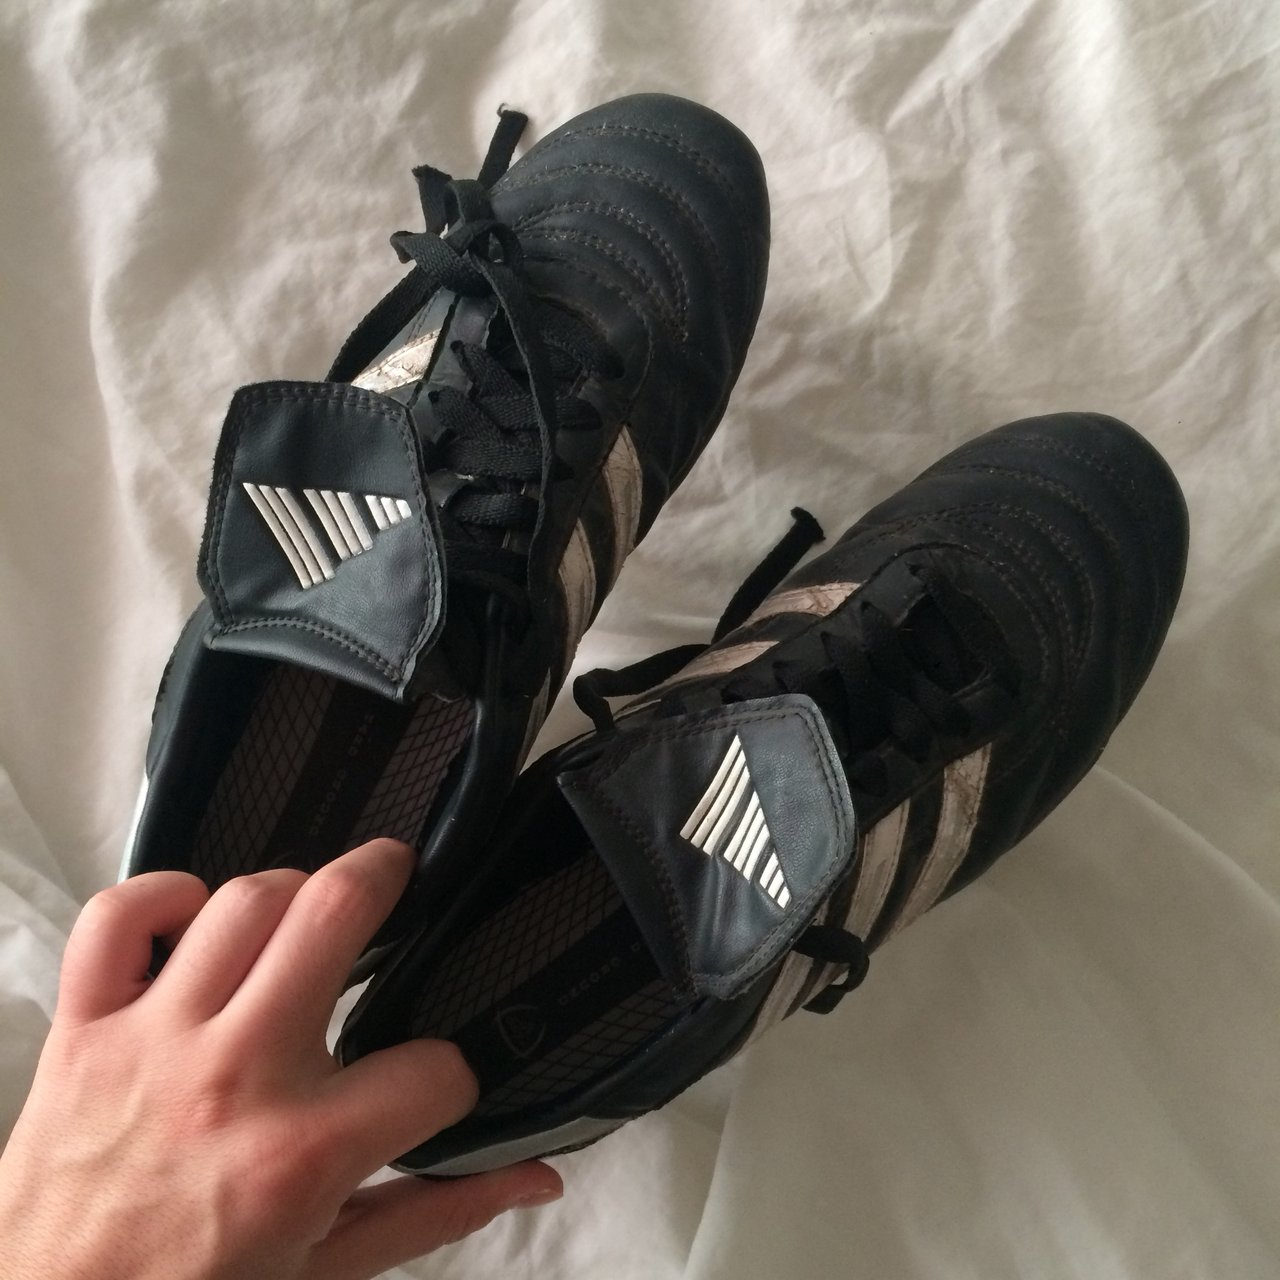 Size 8 women s soccer cleats in black and white by Adidas. a - Depop b6a5696261